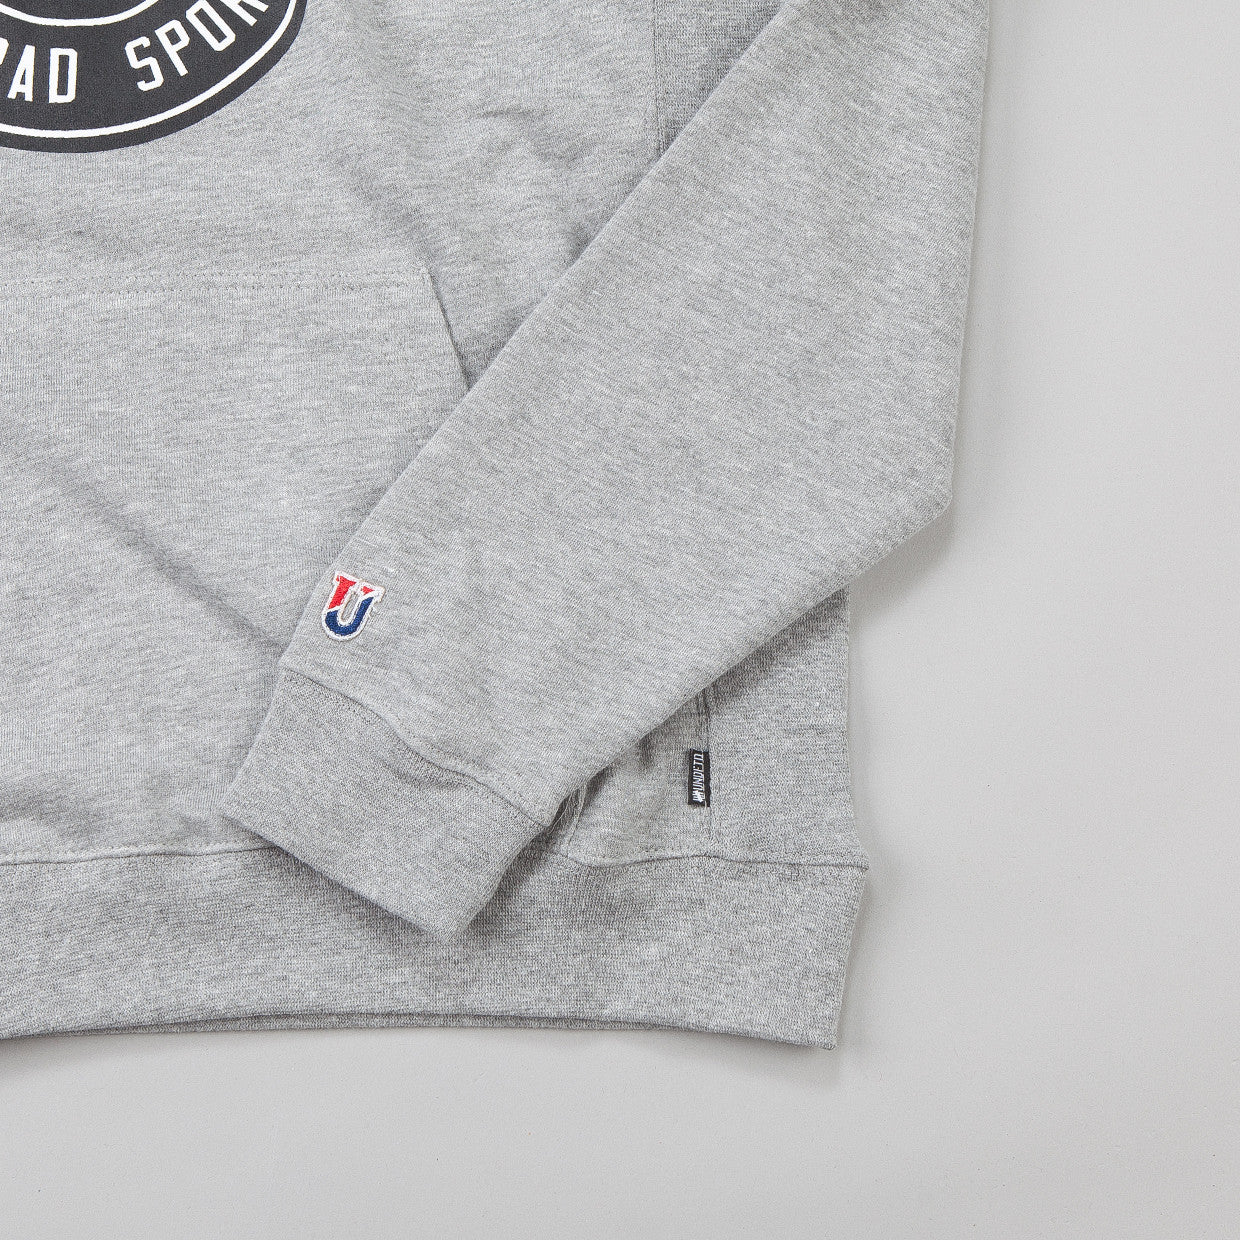 Undefeated BS Hooded Sweatshirt Grey Heather